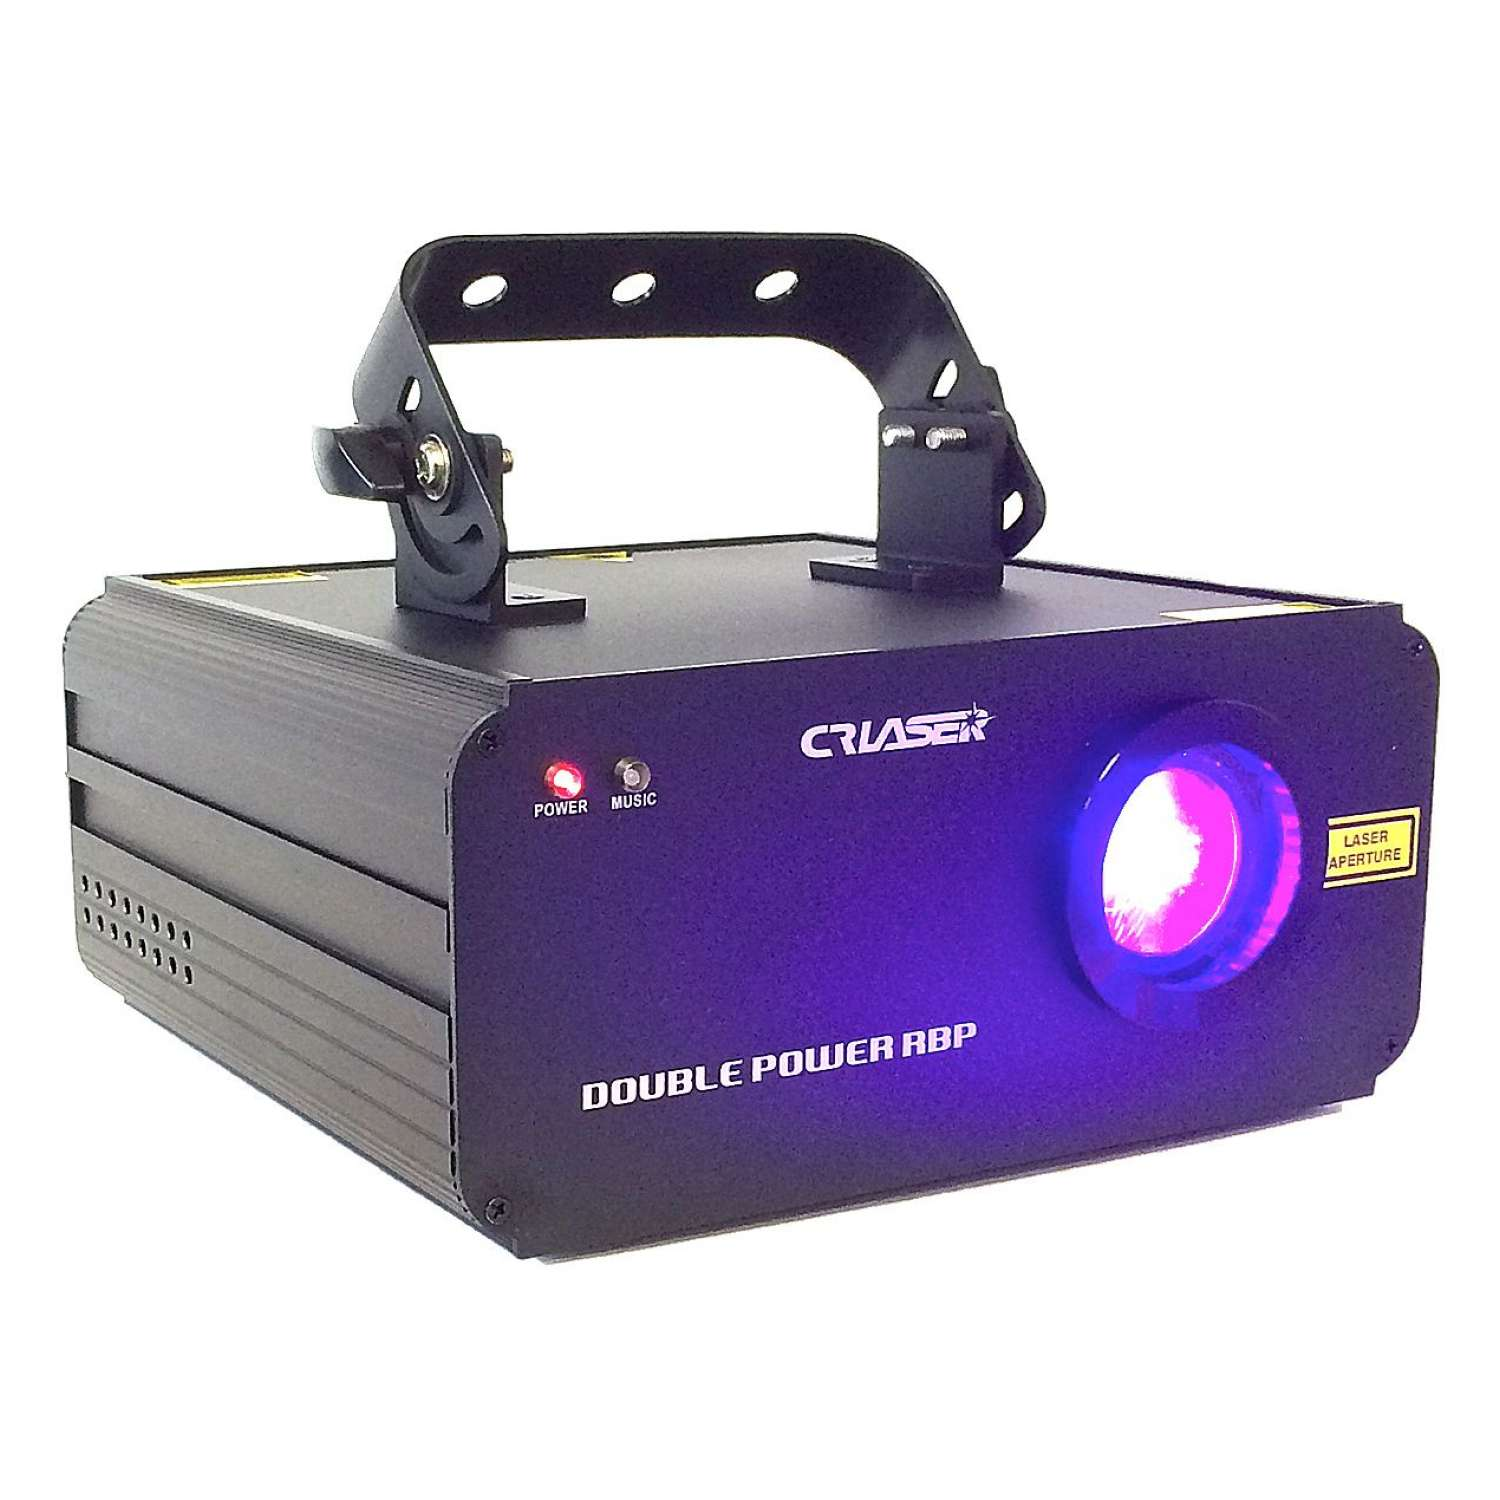 CR Laser Double Power RBP 650mW Pink Multi Color Laser, Grating Effect 1